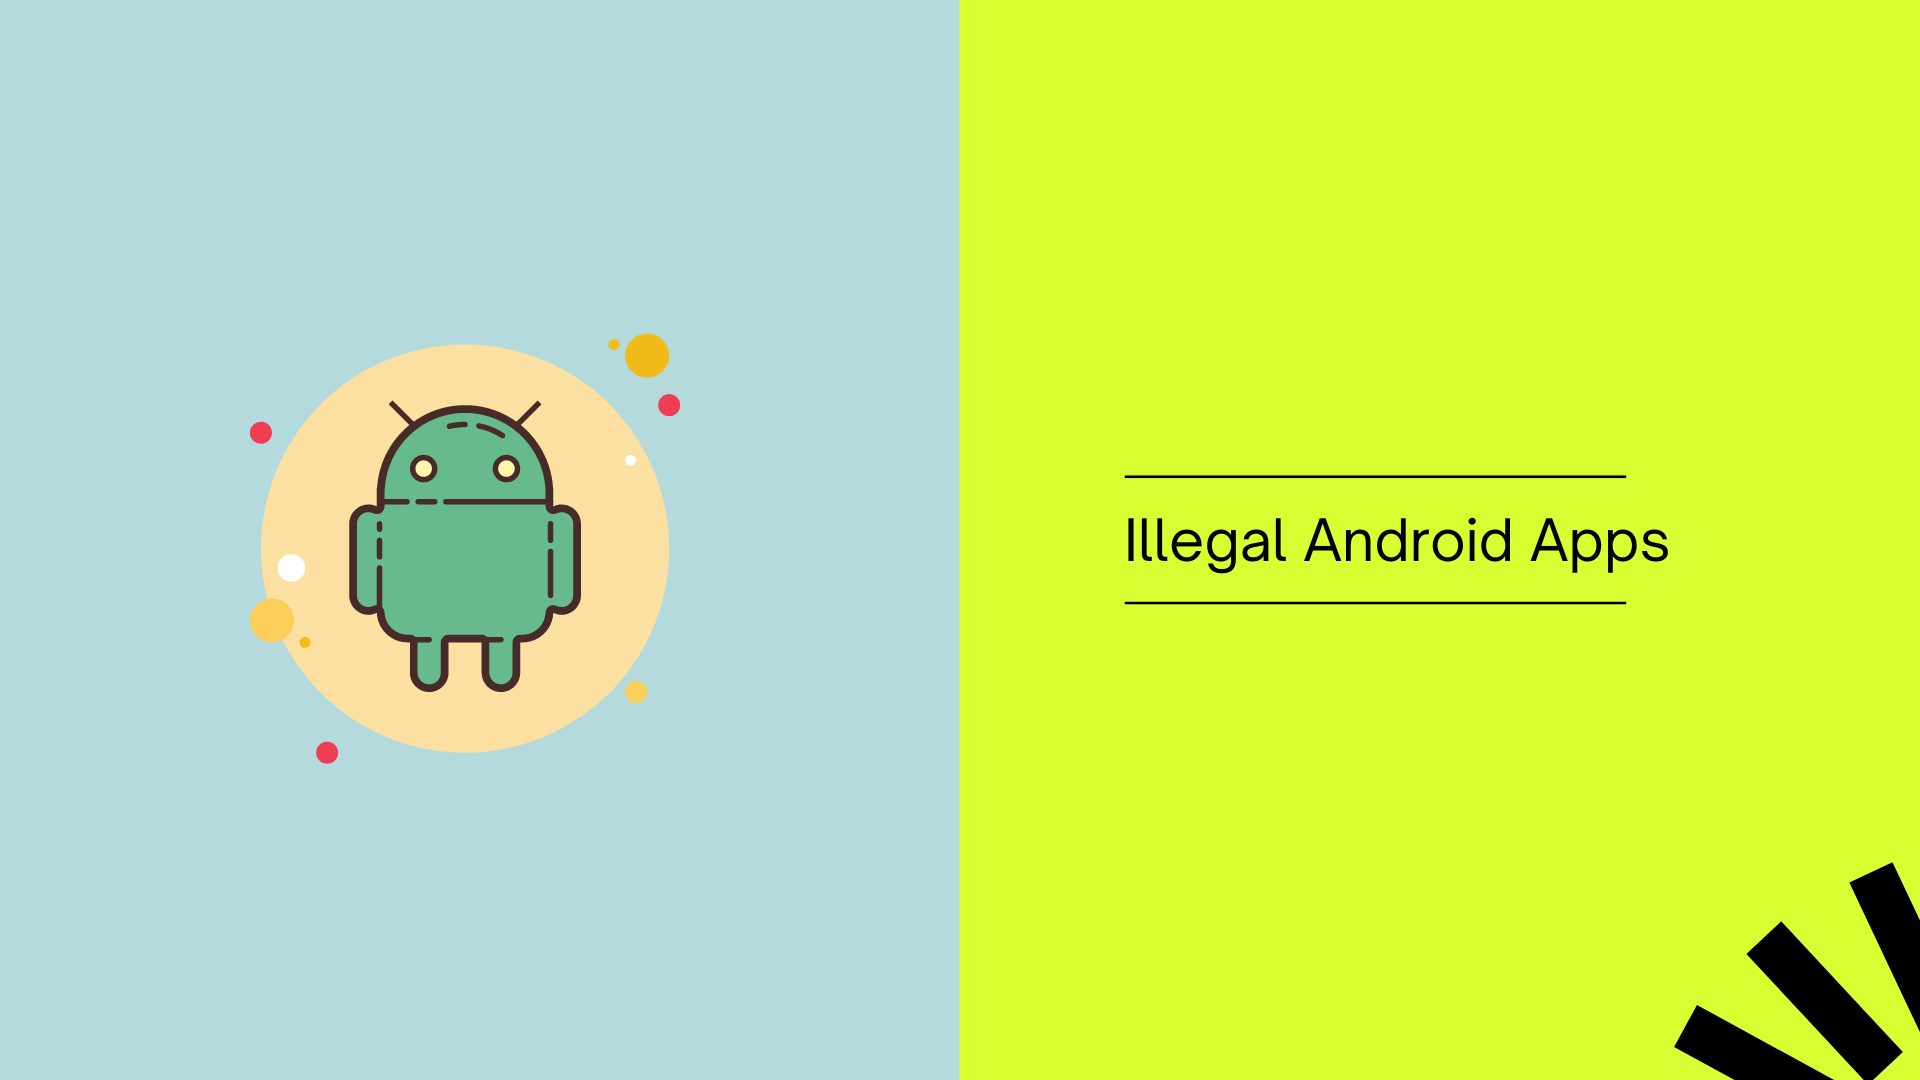 Illegal Android Apps